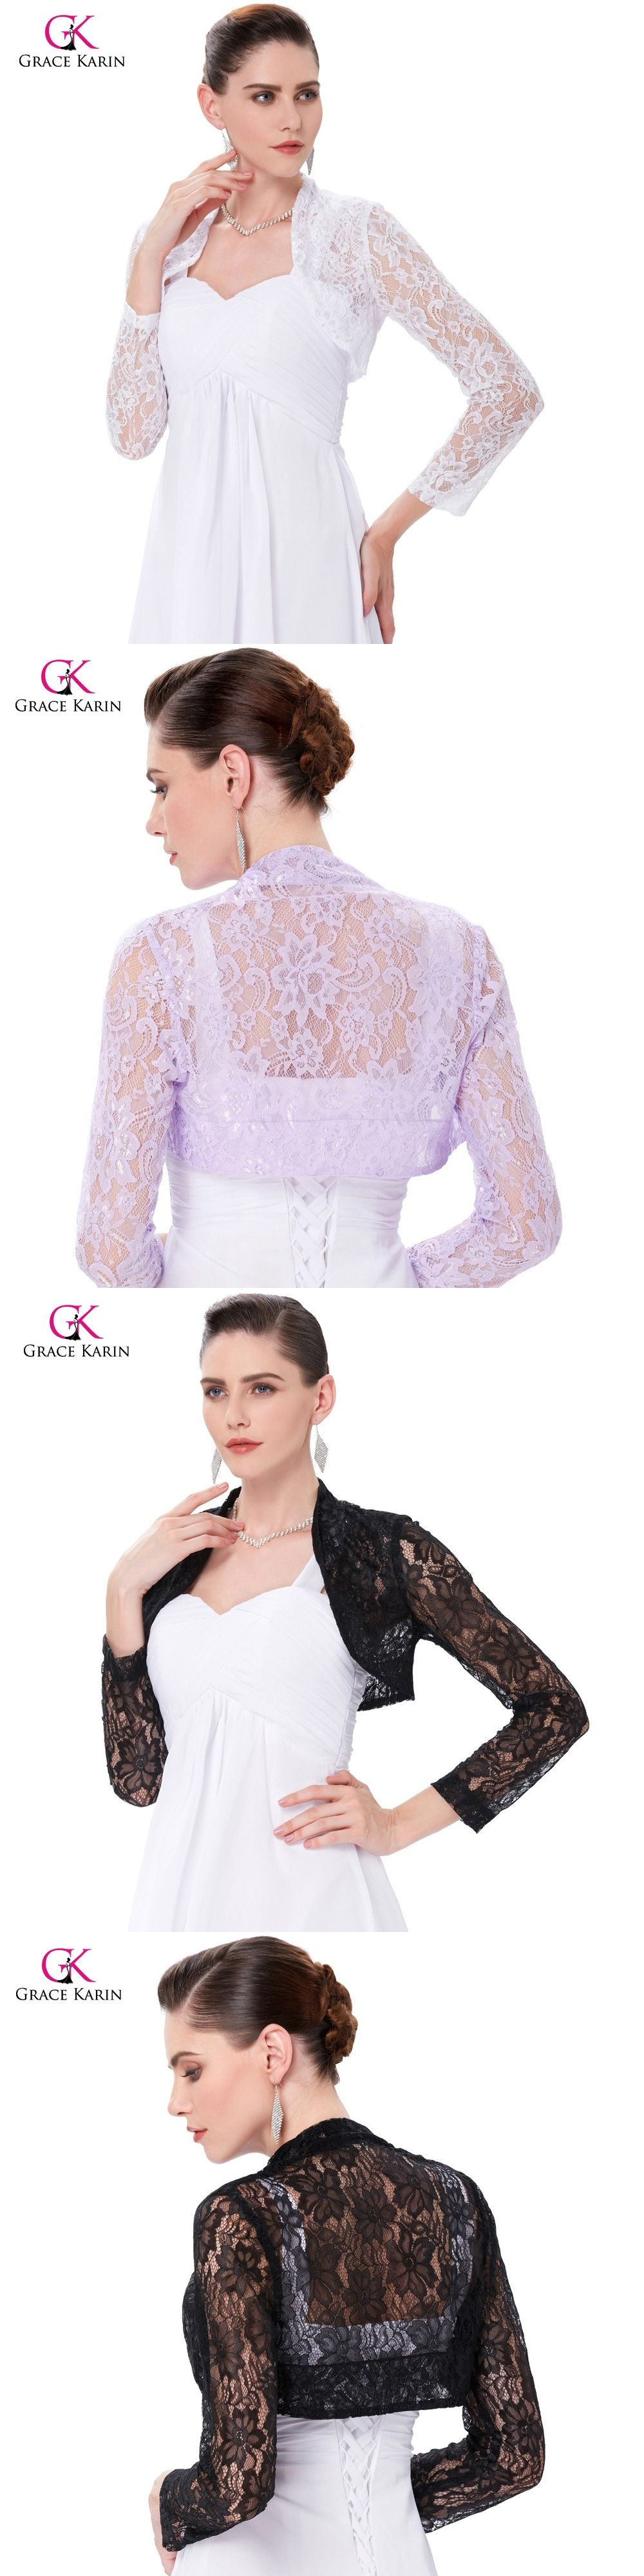 0bd4fad52cf Long Sleeve Cropped Shrug Jackets For Wedding Plus Size White Lace Bridal  Boleros Wedding Jackets 2017